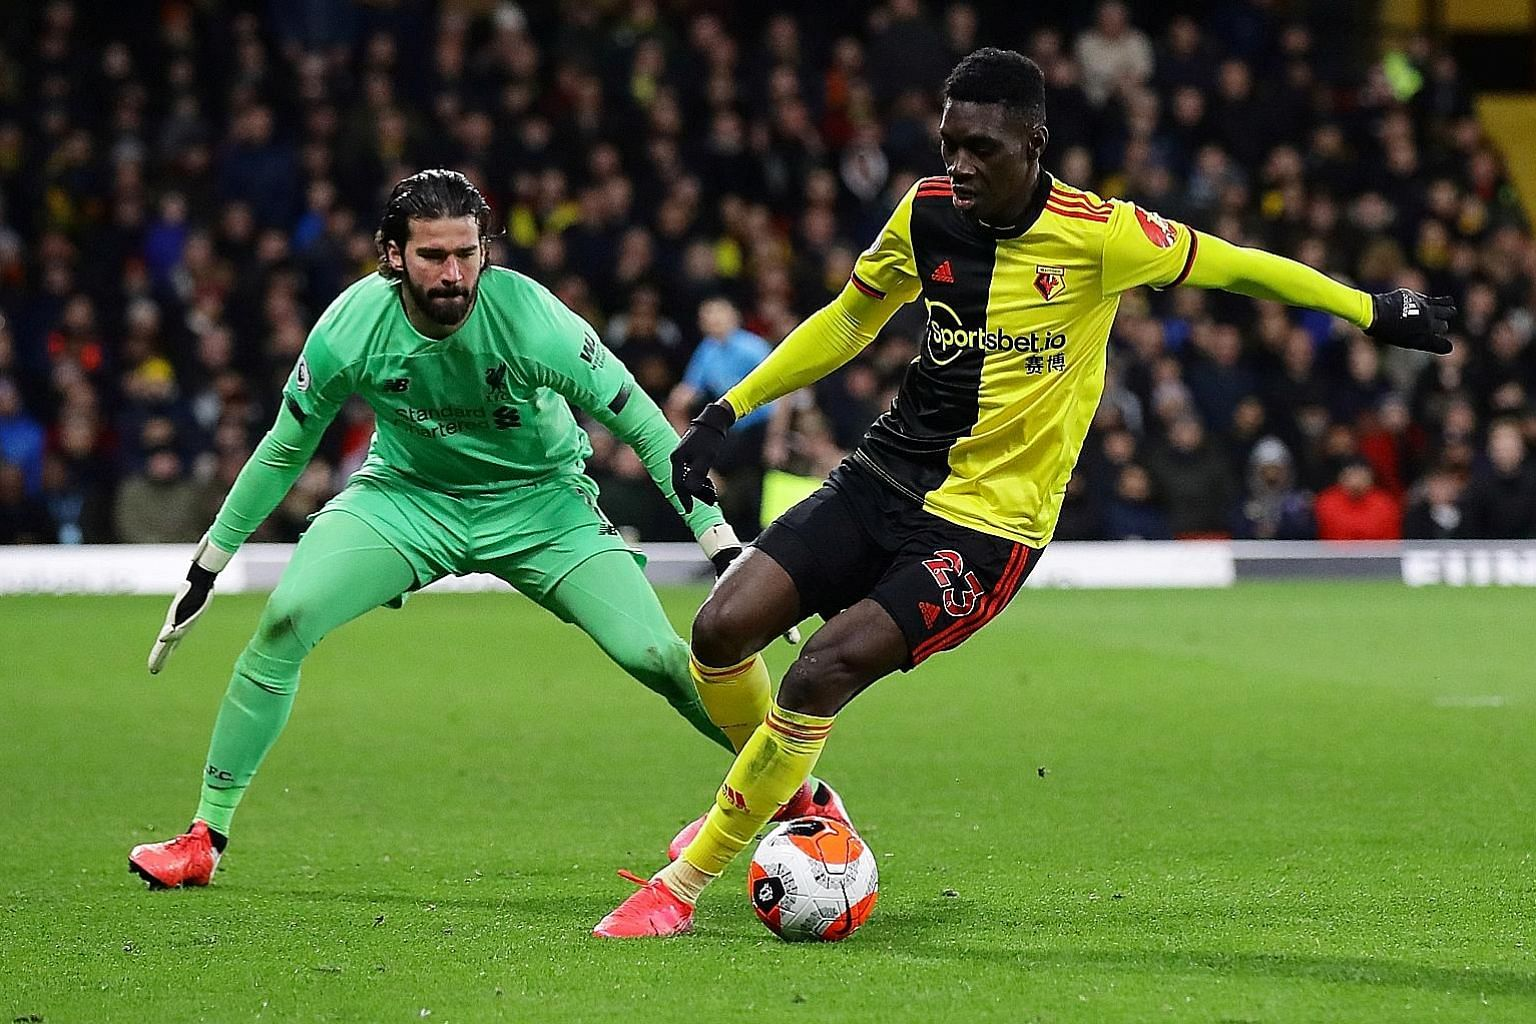 Watford's Ismaila Sarr, coming up against Liverpool goalkeeper Alisson Becker, scored two goals in the stunning 3-0 win over the Premier League runaway leaders at Vicarage Road on March 1. PHOTO: REUTERS